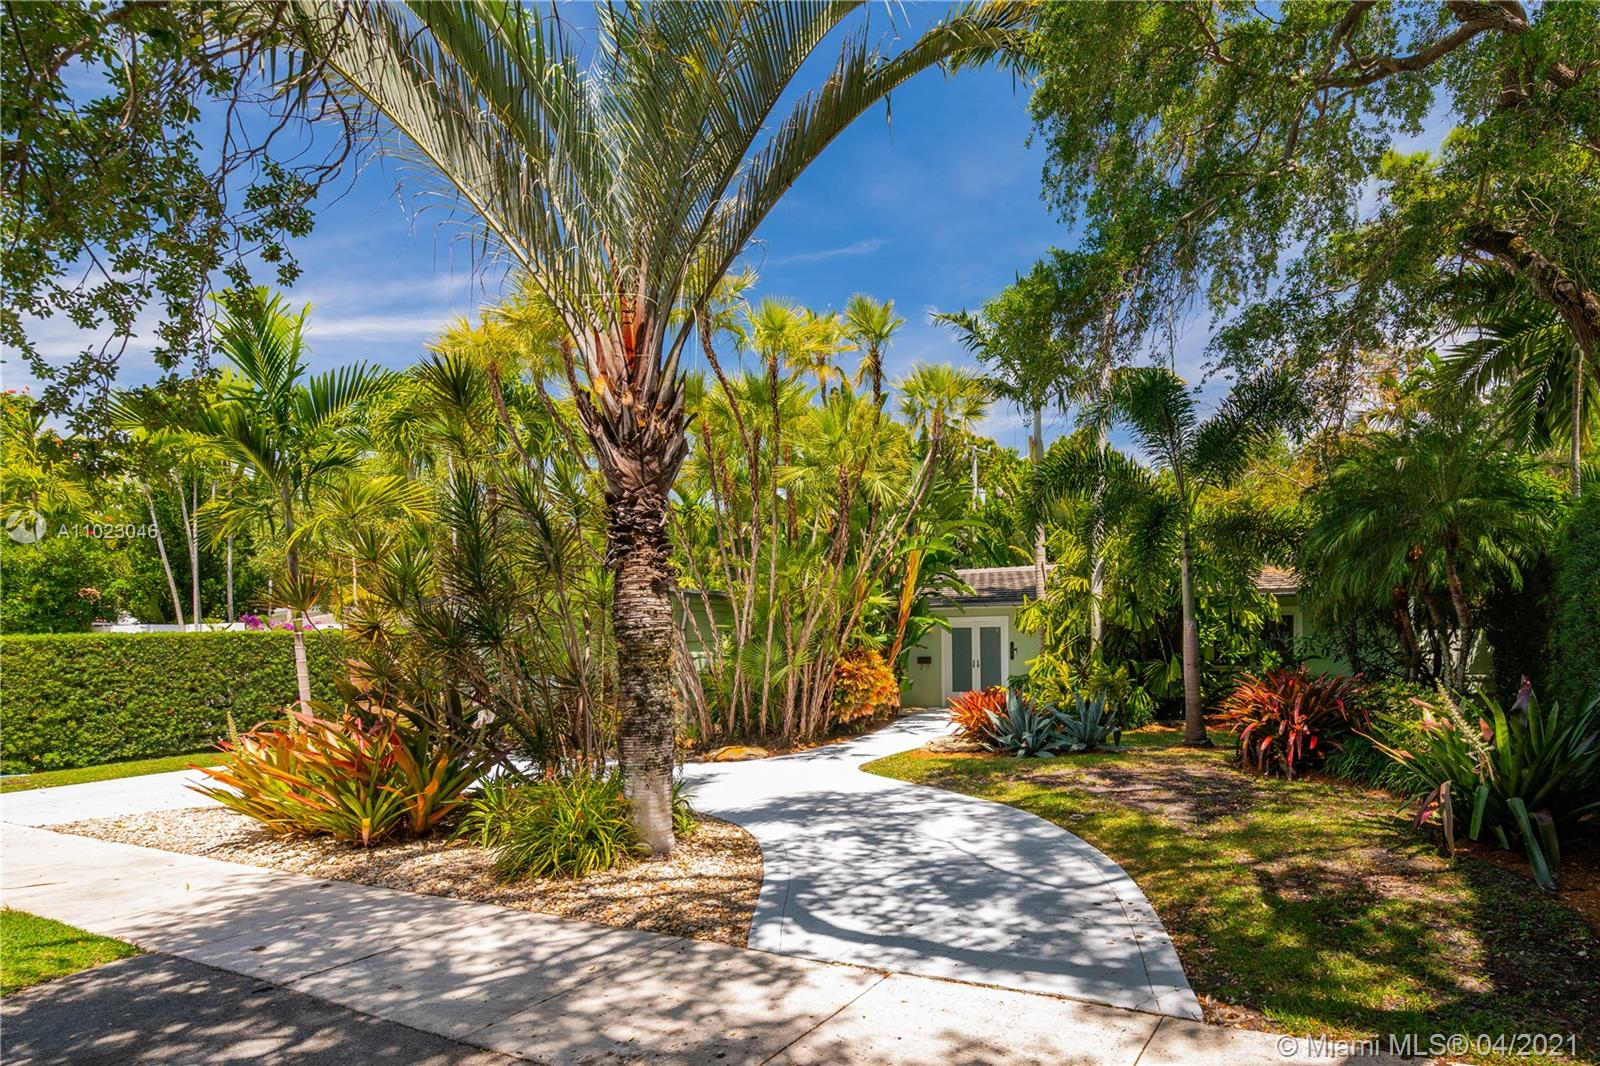 Nestled into this great Coconut Grove spot in Bay Heights, this home is a tropical delight. Open and airy with bragging rights that include a newer roof, impact glass, new floors, and new bathrooms. A spacious family room with wood beam ceilings compliments the open living and dining room as well as overlooking a beautifully landscaped backyard and glamorous pool. The eat-in kitchen has granite countertops, wood cabinetry and stainless-steel appliances. Bay Heights has 24-hour roving security and is conveniently located near Key Biscayne, Brickell Avenue, Vizcaya, Mercy Hospital, the Village of Coconut Grove and expressways.  A Very Special Home.